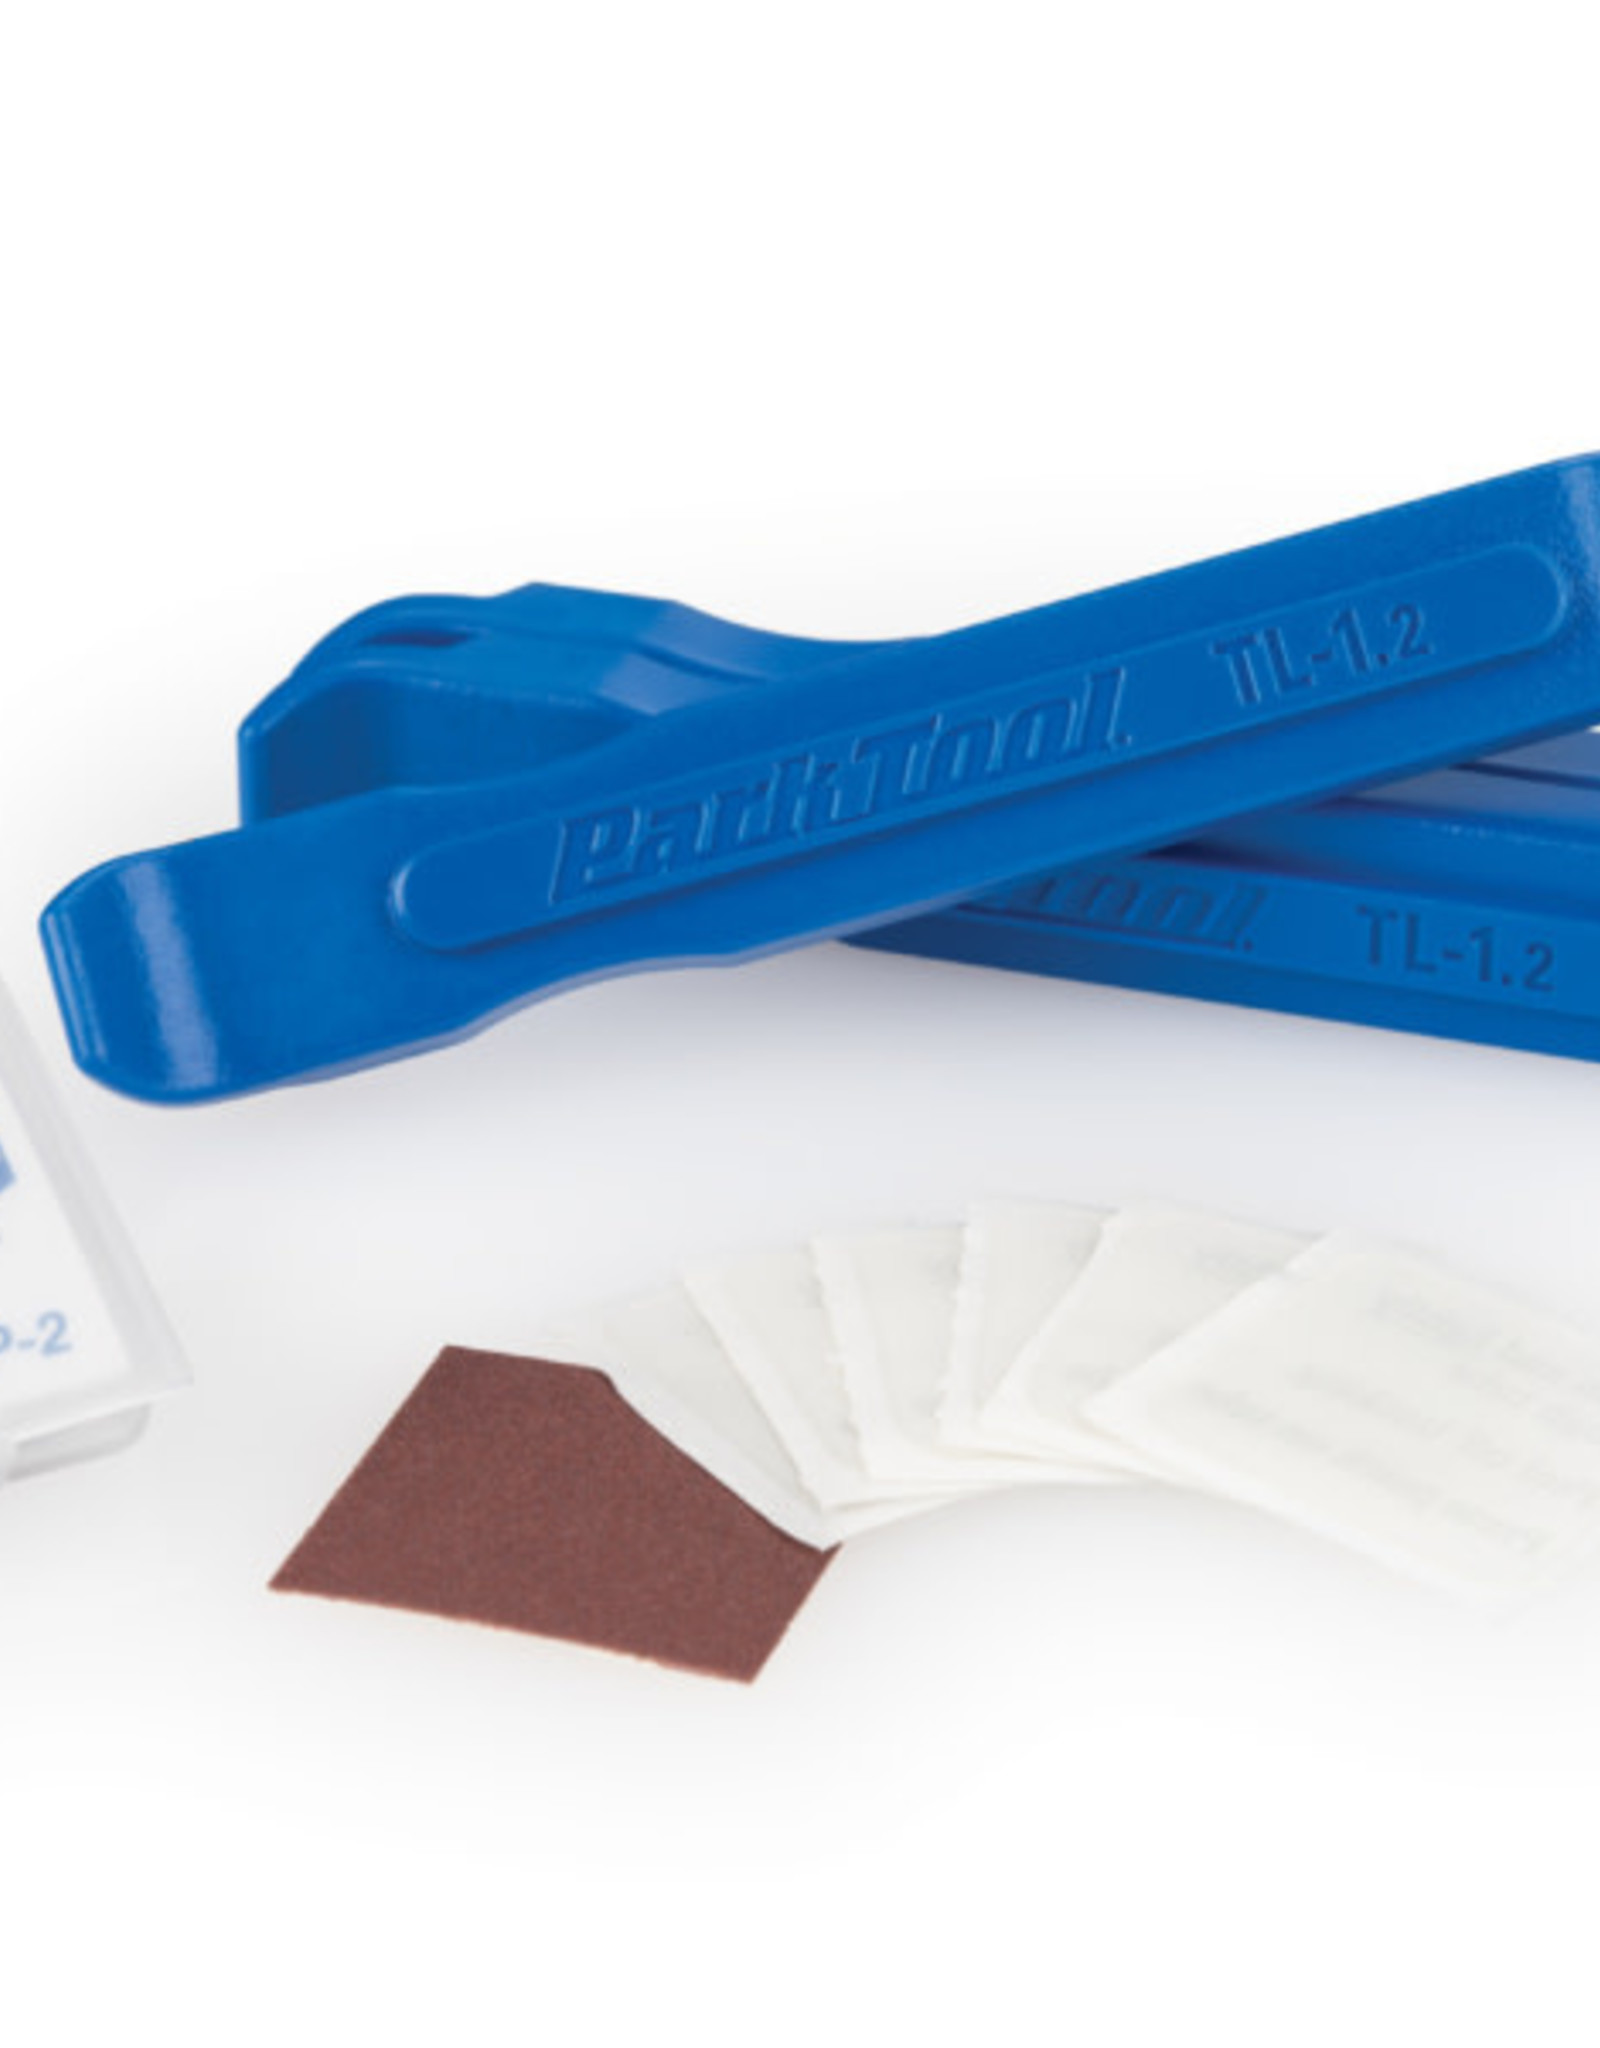 Park Tool Park Tool, TR-1, Kit of 6 pre-glued patches with 3 tire levers